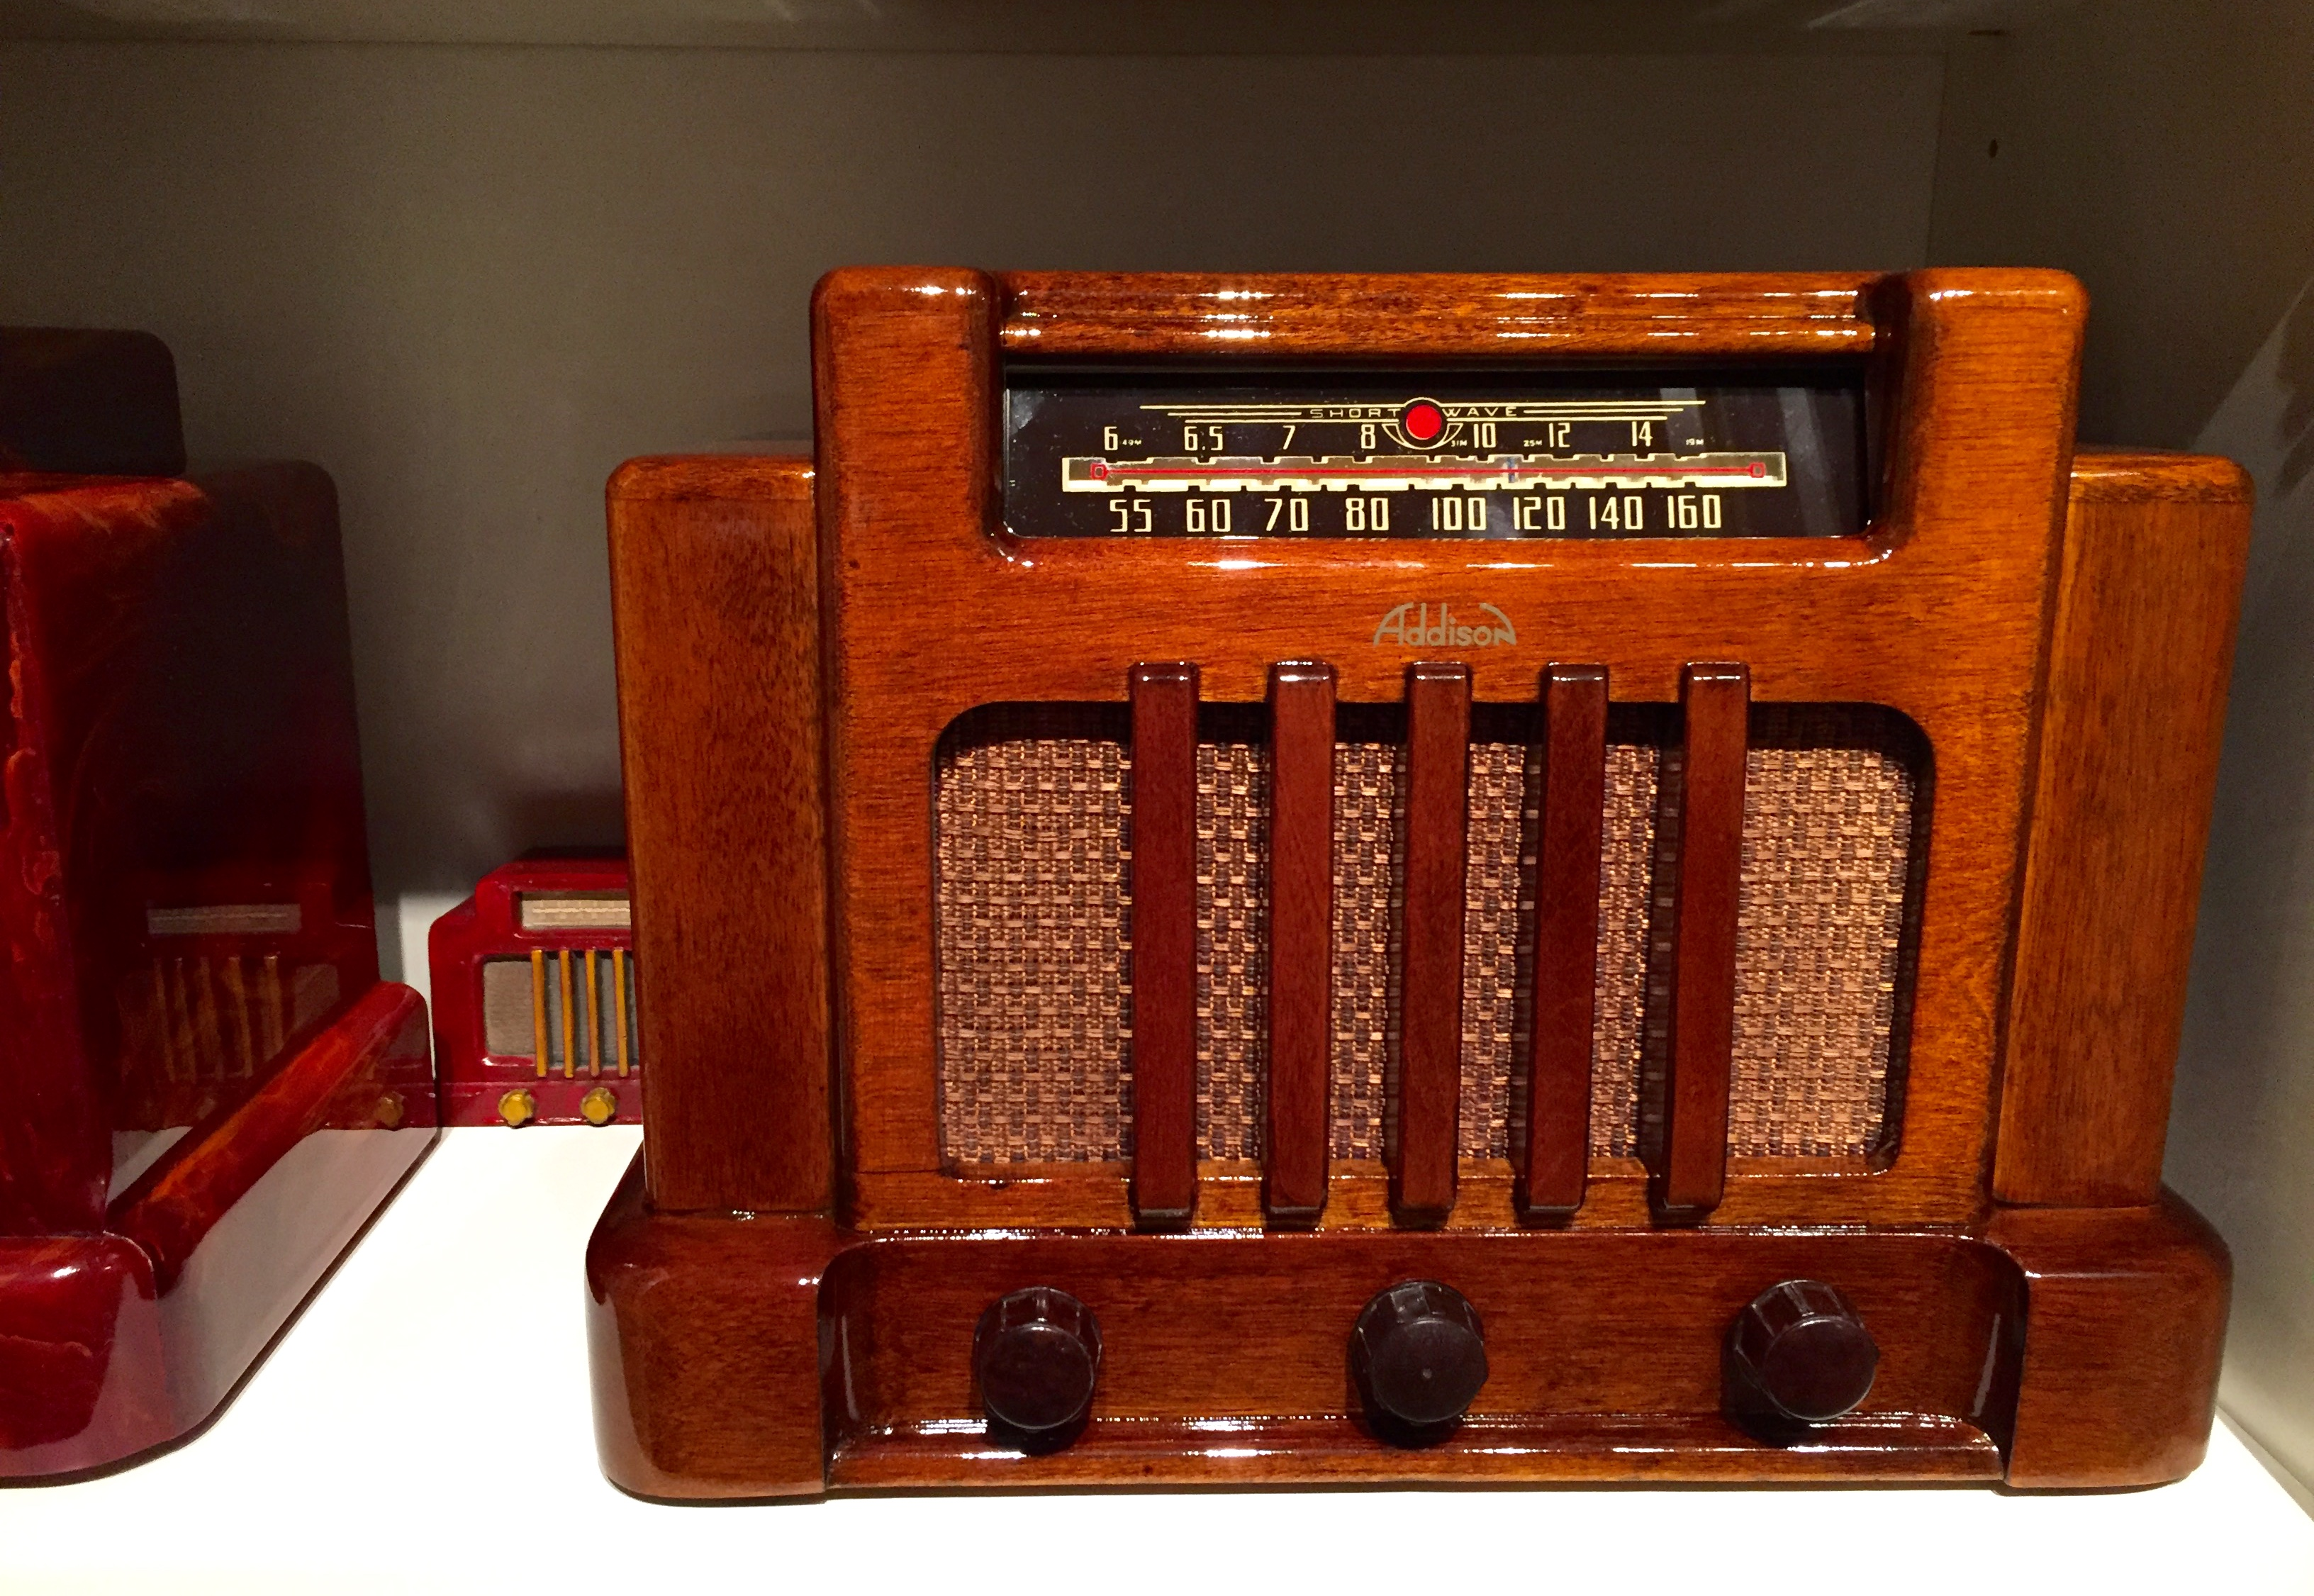 The Case of the Addison Radio – Radios Past